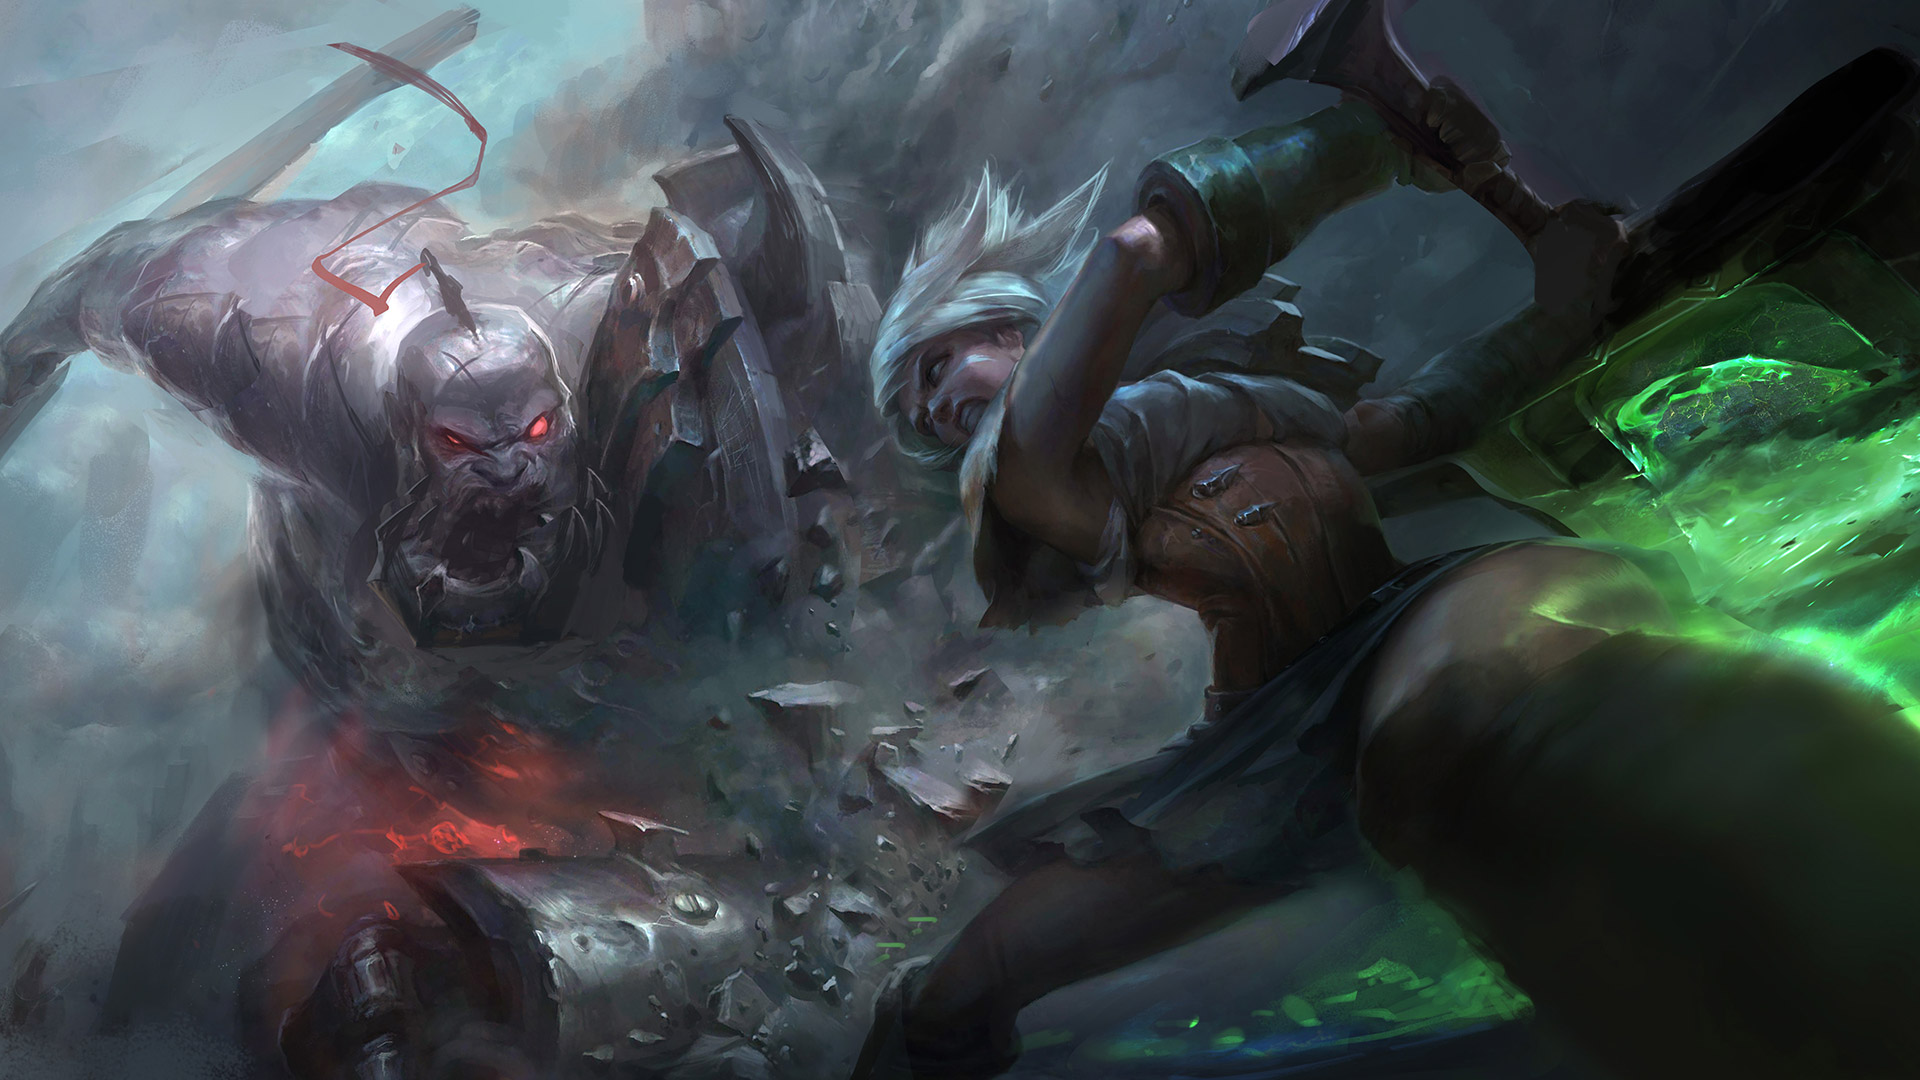 Riven Vs Sion Wallpaper 1920x1080 Version